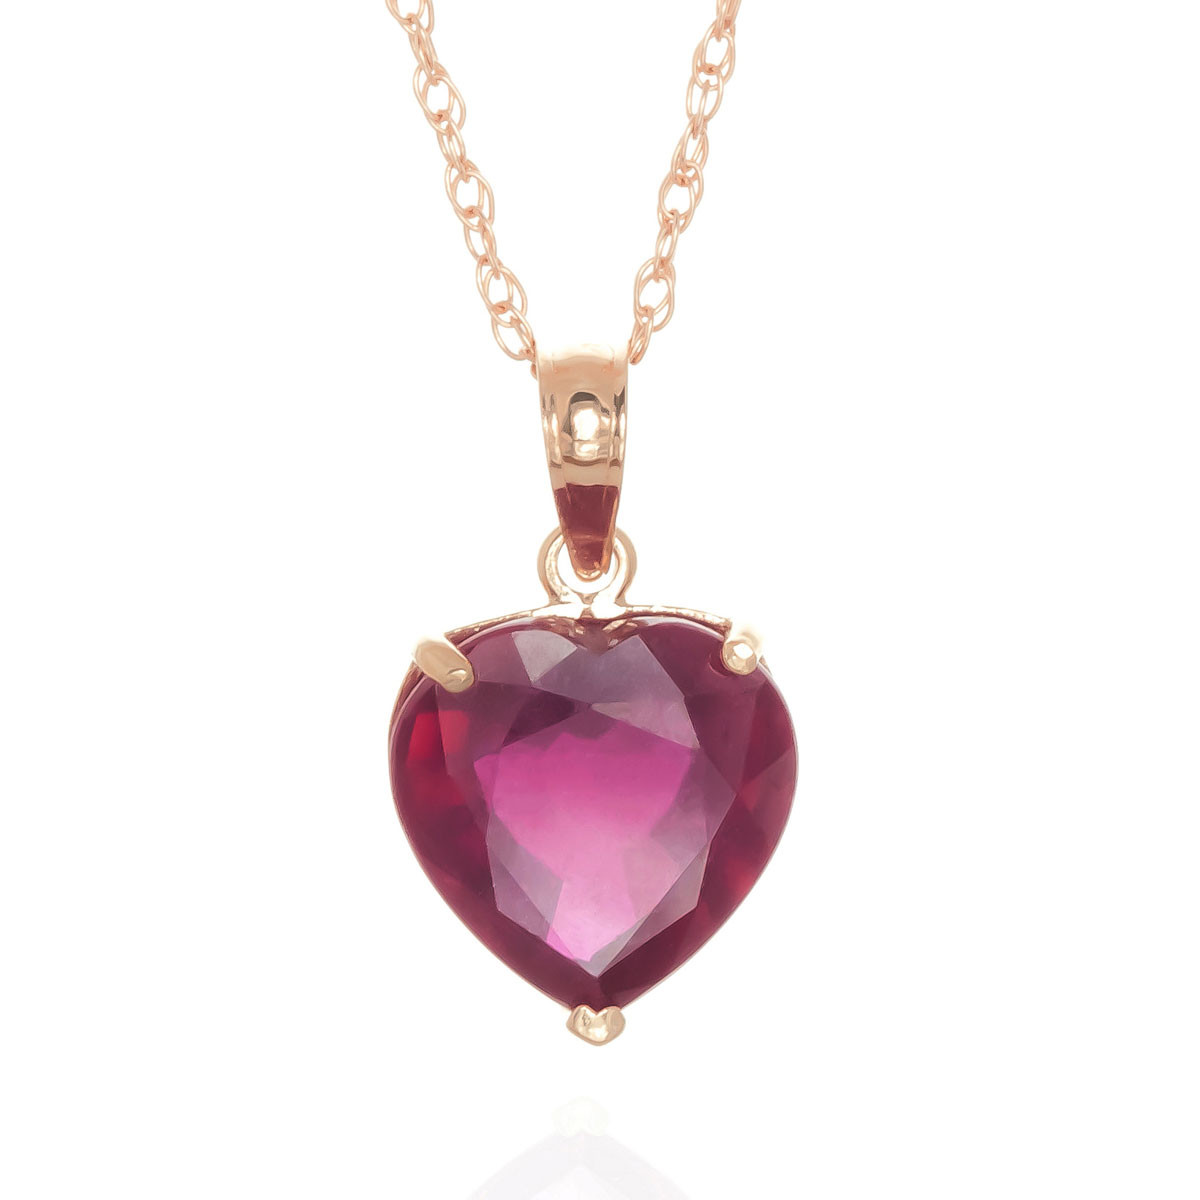 Ruby Large Heart Pendant Necklace 4.3 ct in 9ct Rose Gold